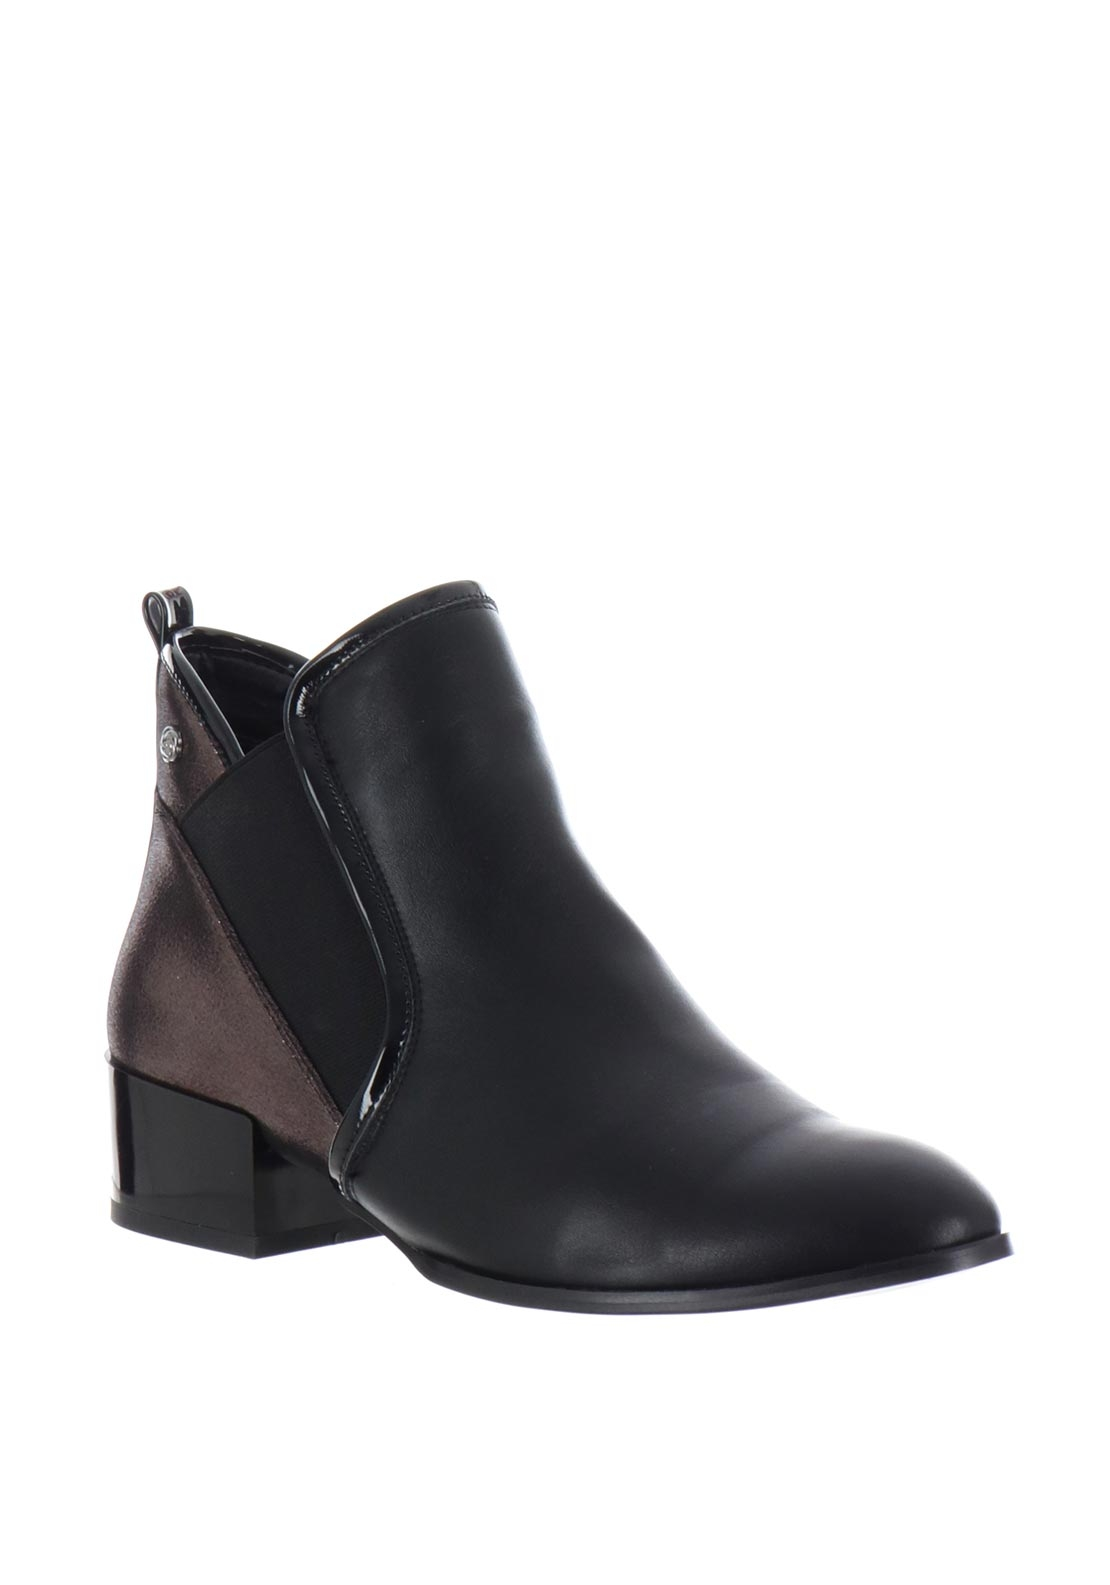 Zanni & Co. Platinum Chelsea Boots, Black